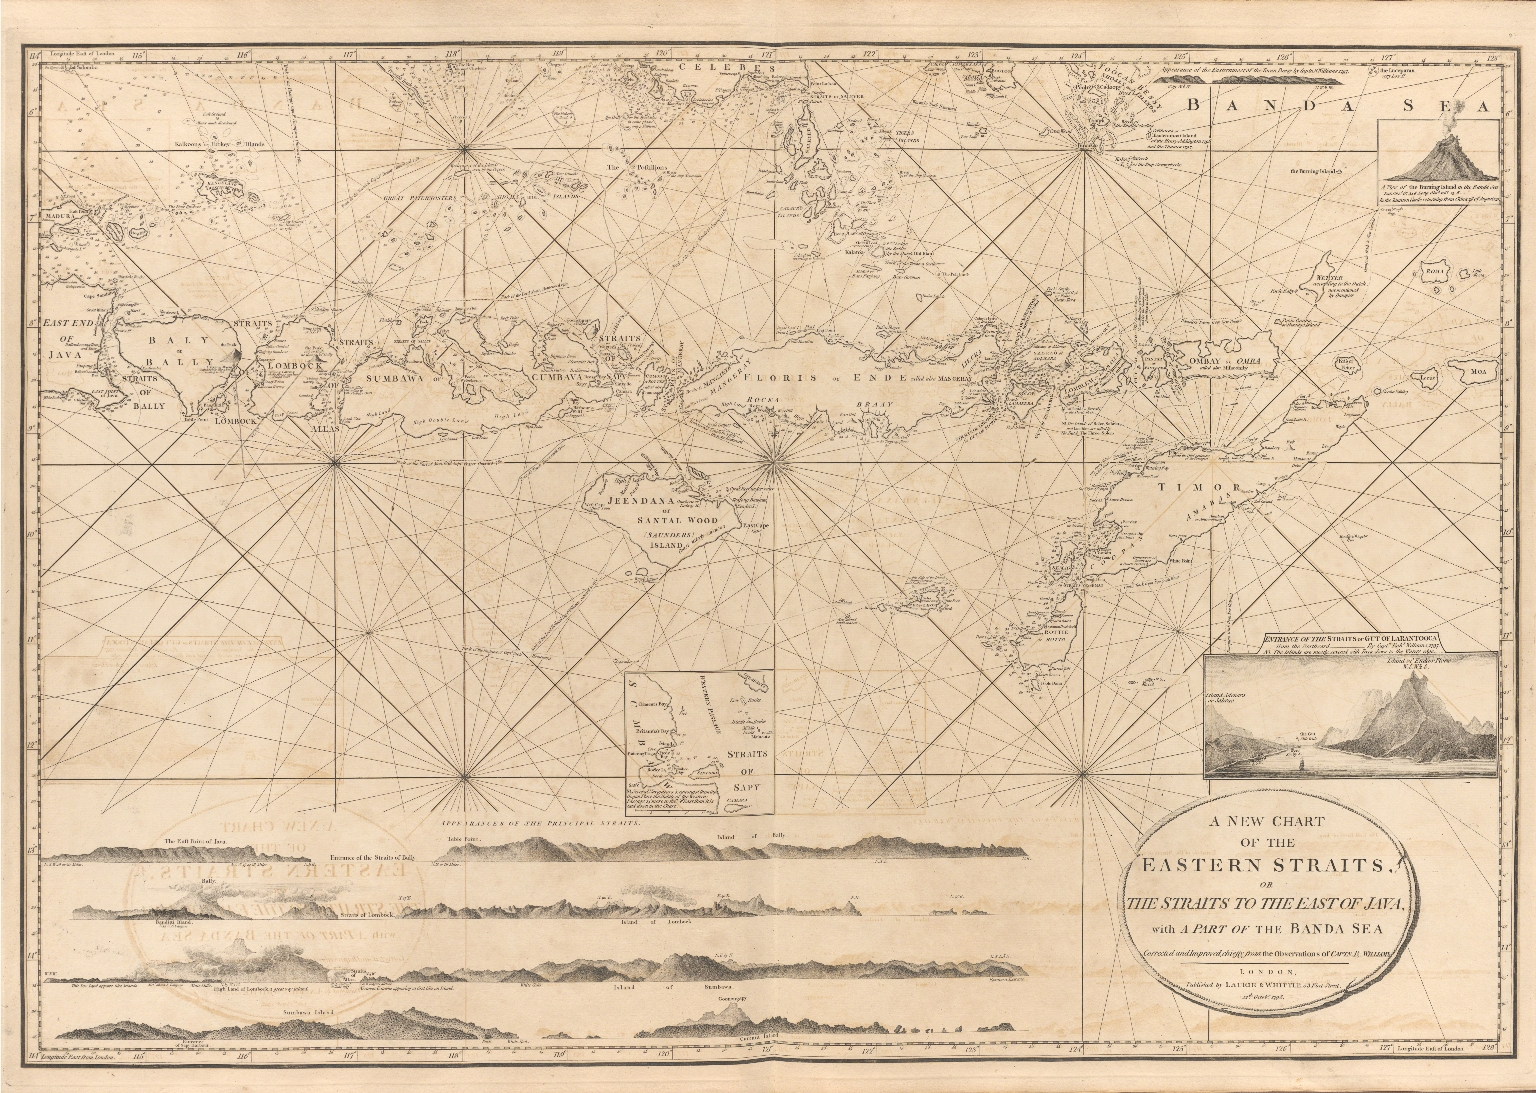 A new chart of the Eastern Straits or the straits to the east of Java with a part of the Banda Sea